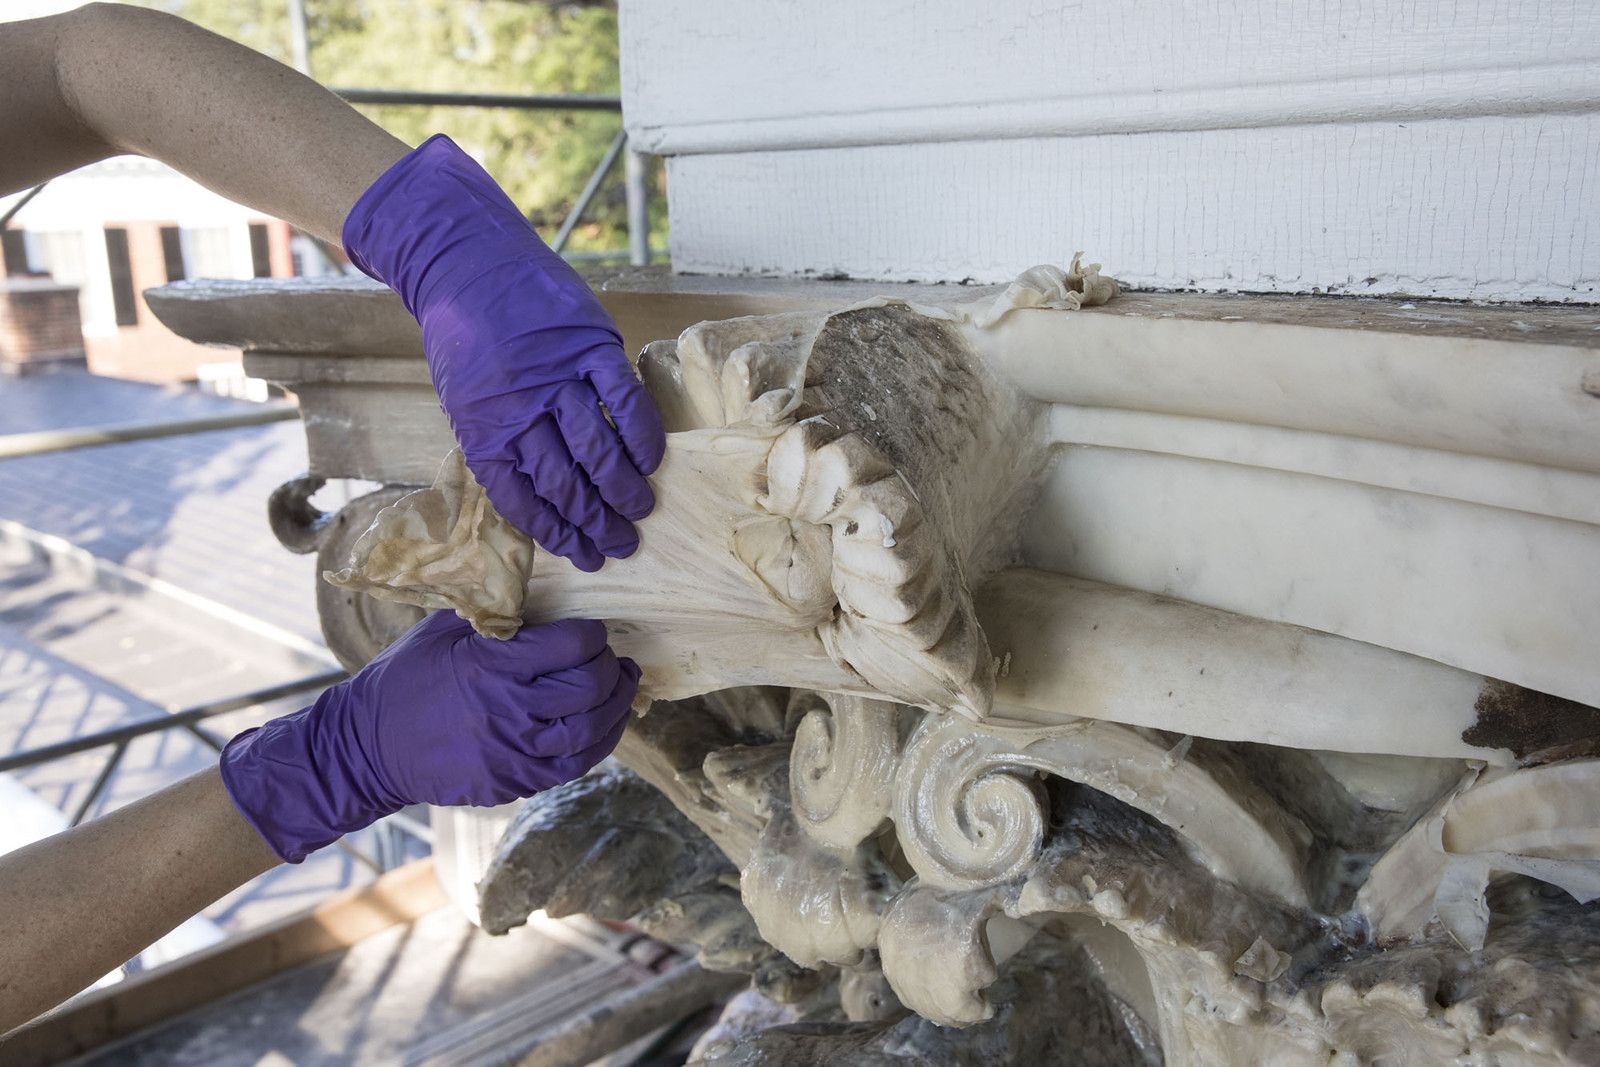 """Leigh Hassler cleans one of the marble capitals at Pavilion III. """"It certainly feels more personal than my other jobs,"""" she said. """"I feel a little sense of ownership."""" (Photo by Dan Addison/University Communications)"""